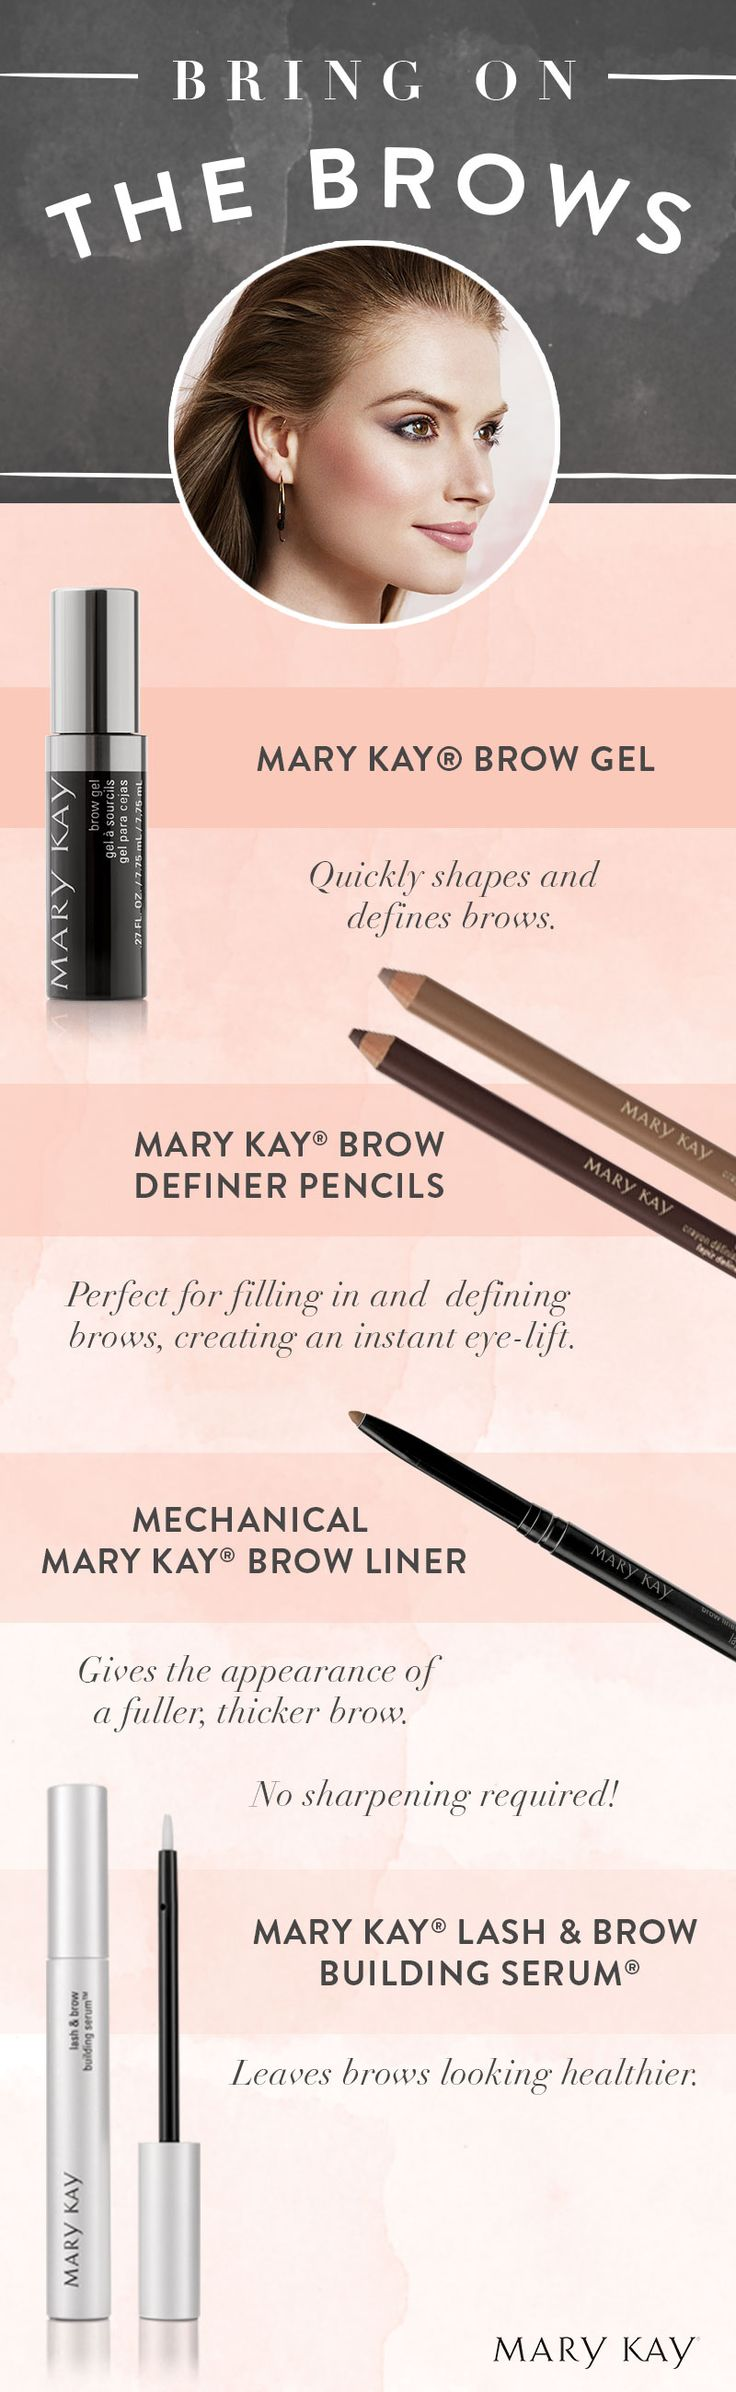 With a little brow know-how and the right tools, your brows can perfectly frame your eyes, enhance your features and balance your face!   Mary Kay